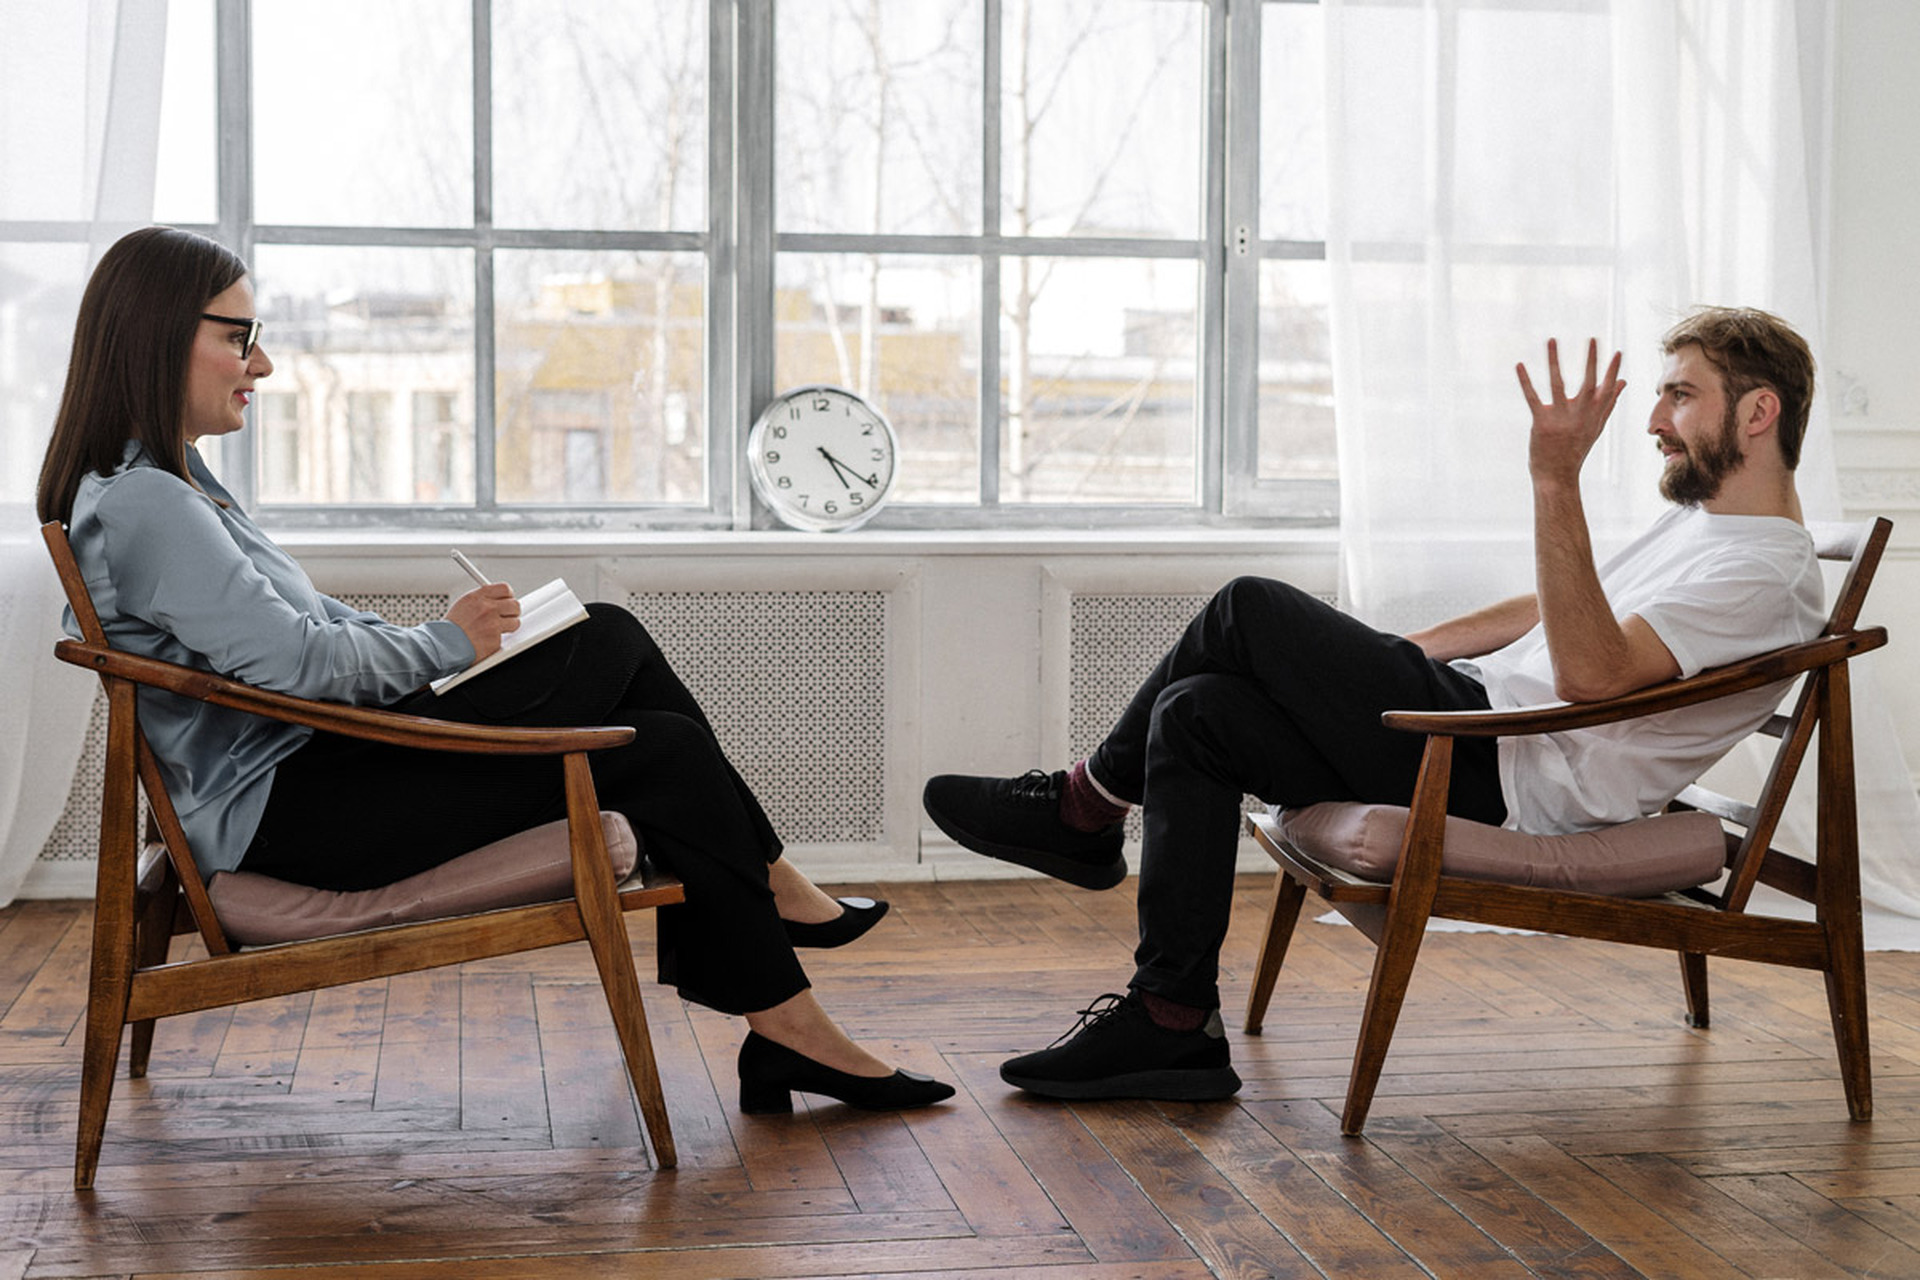 About Psychotherapy